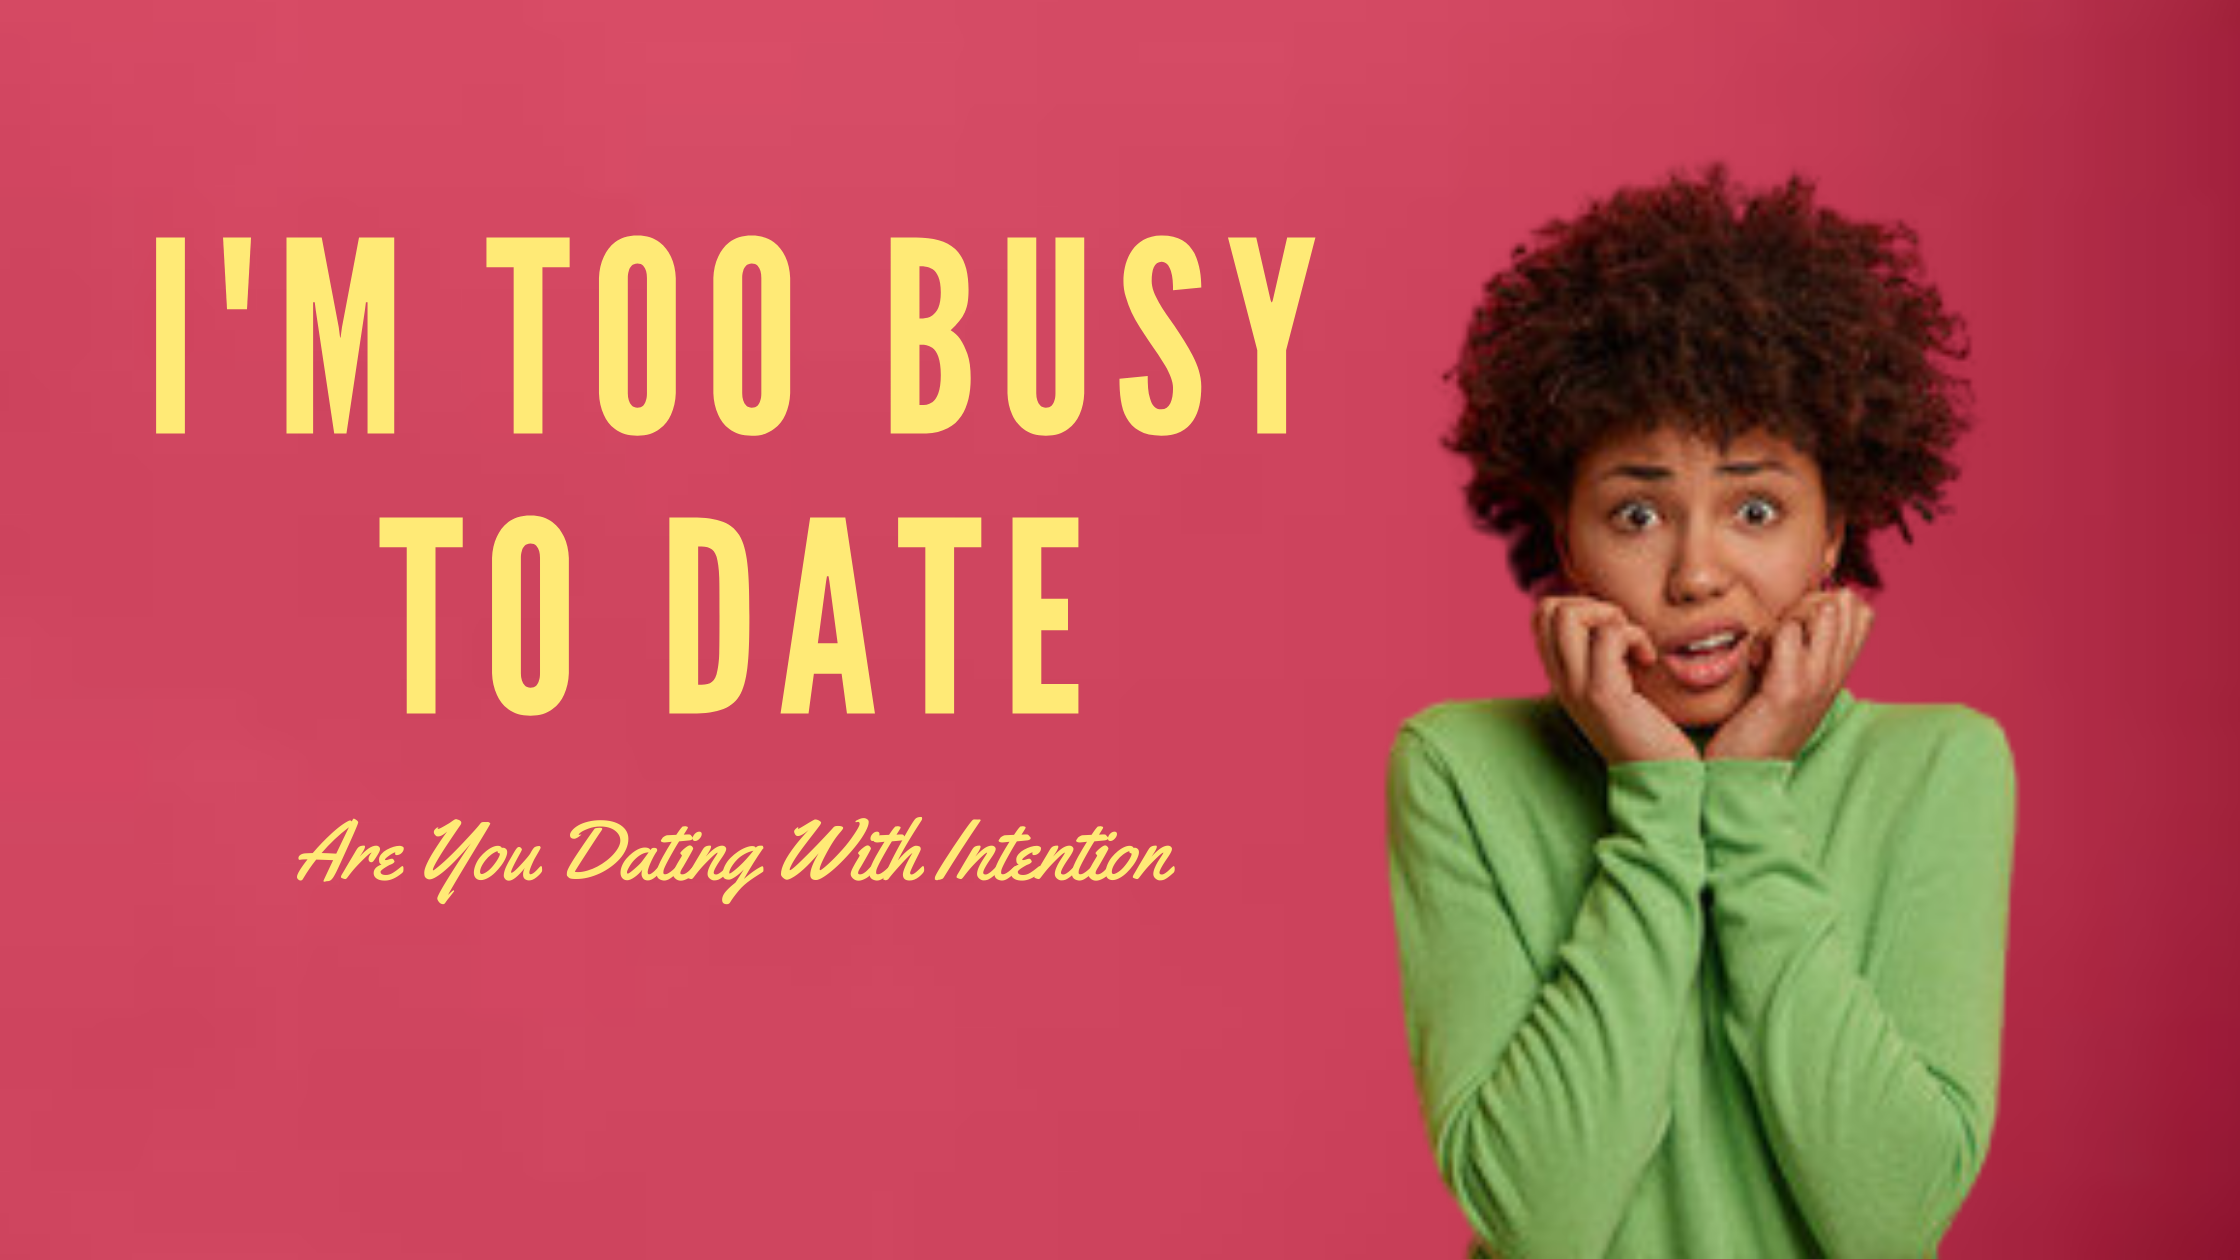 When you are maneuvering the dating scene, getting to know your potential partner is going to take some time. However, based on a survey that was conducted by our team, professional single men and women who are navigating the dating scene stated that one of the biggest challenges they face as a busy professional is that they would love to go on more dates but they just don't have the time.